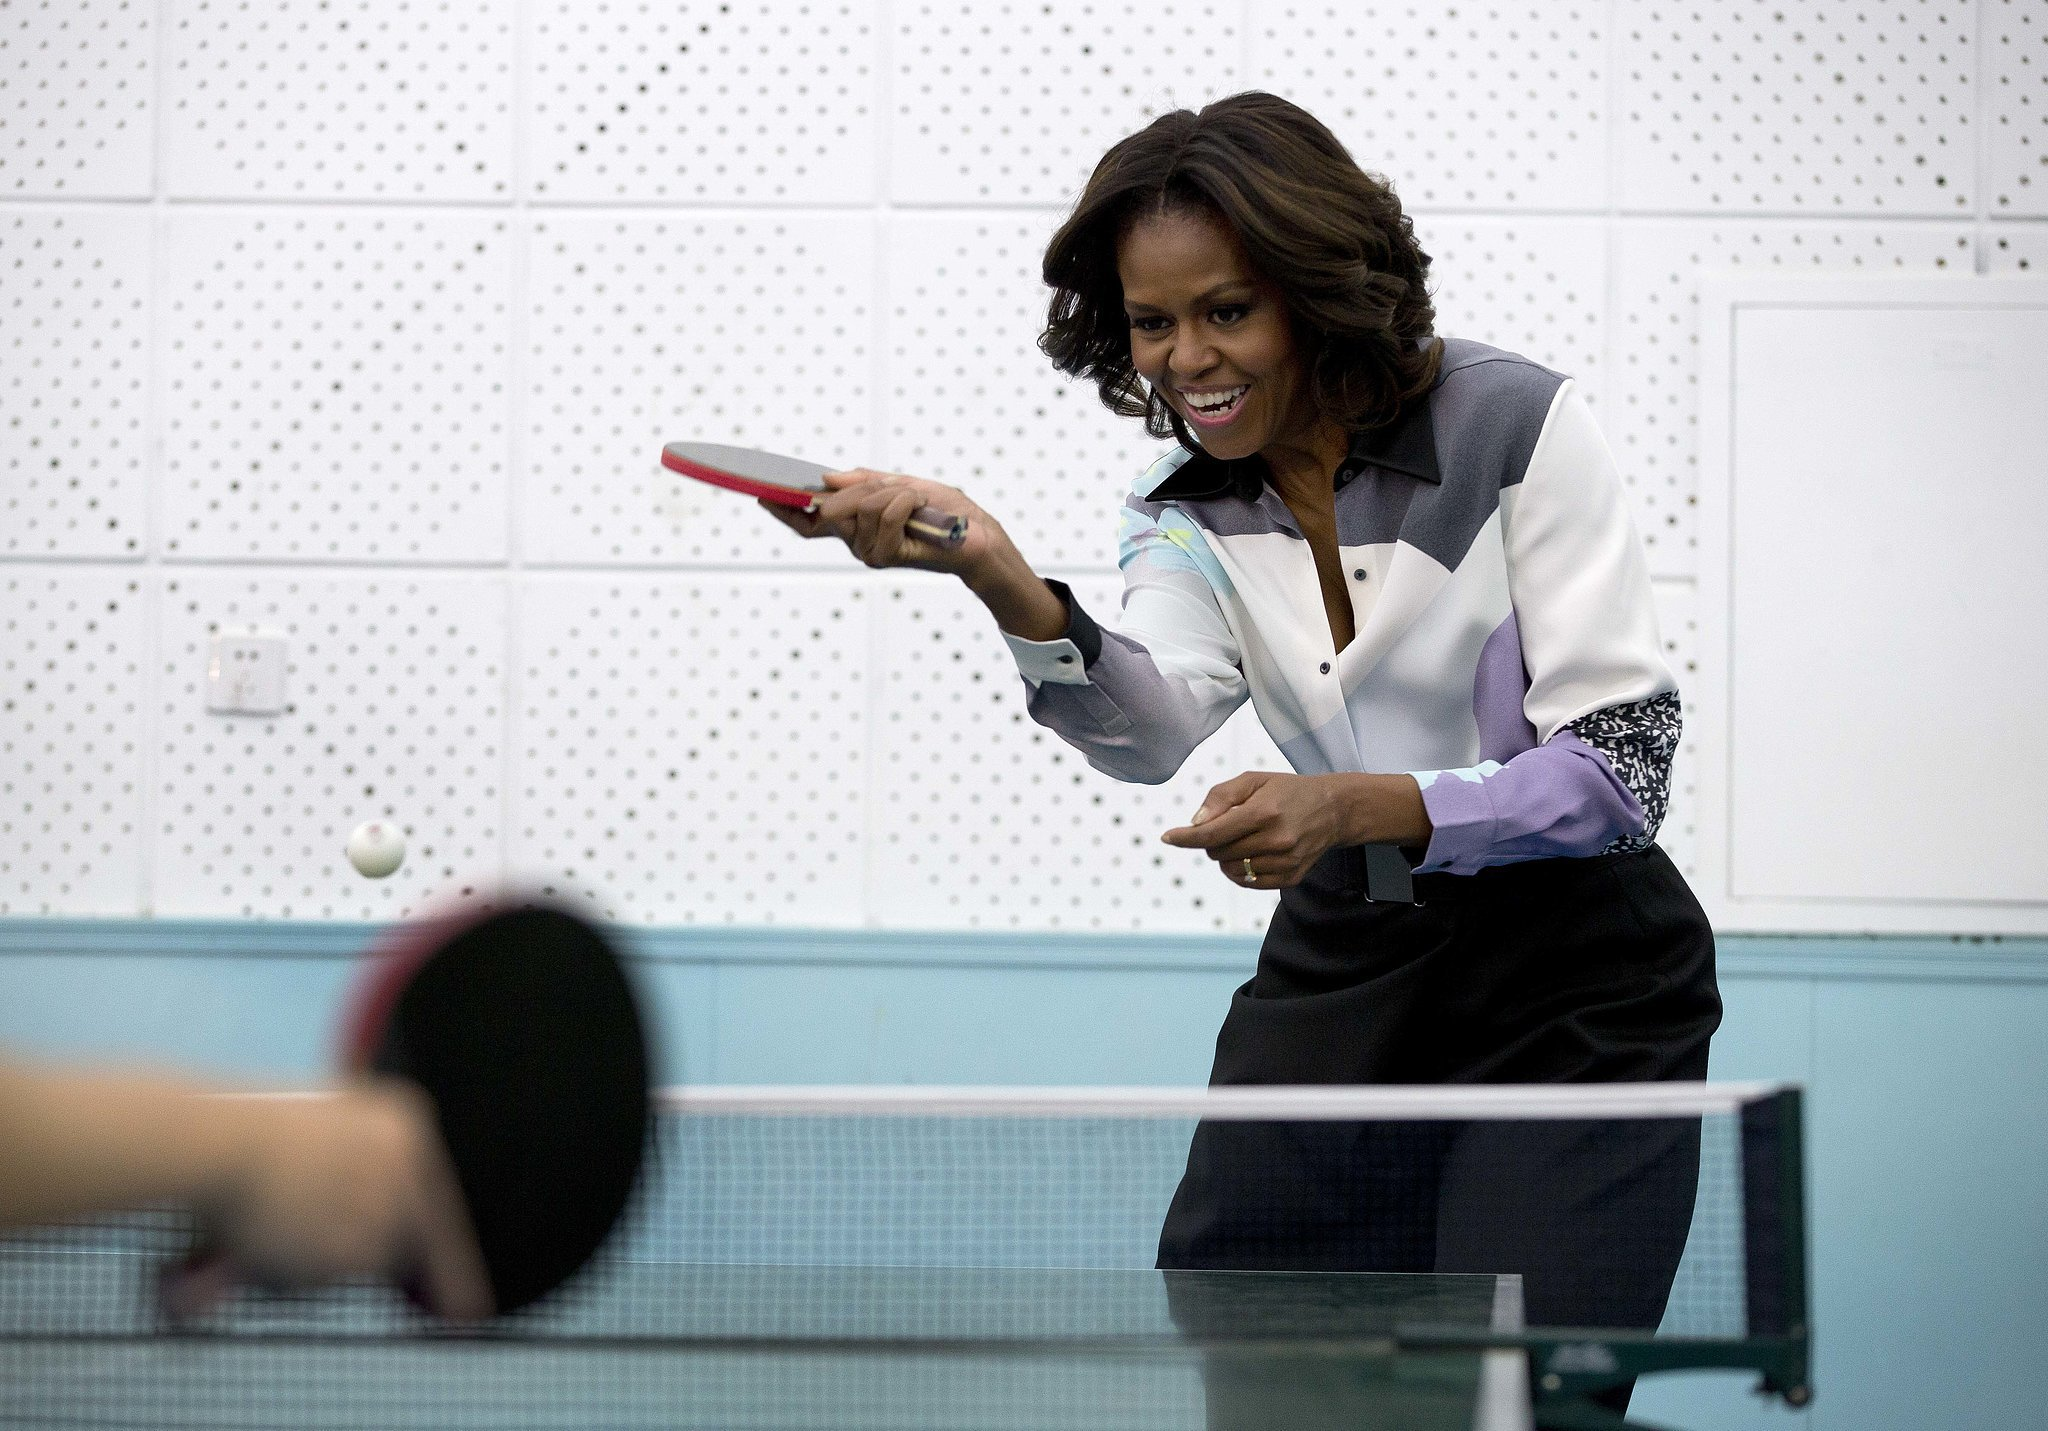 Michelle Obama had a blast playing ping-pong.